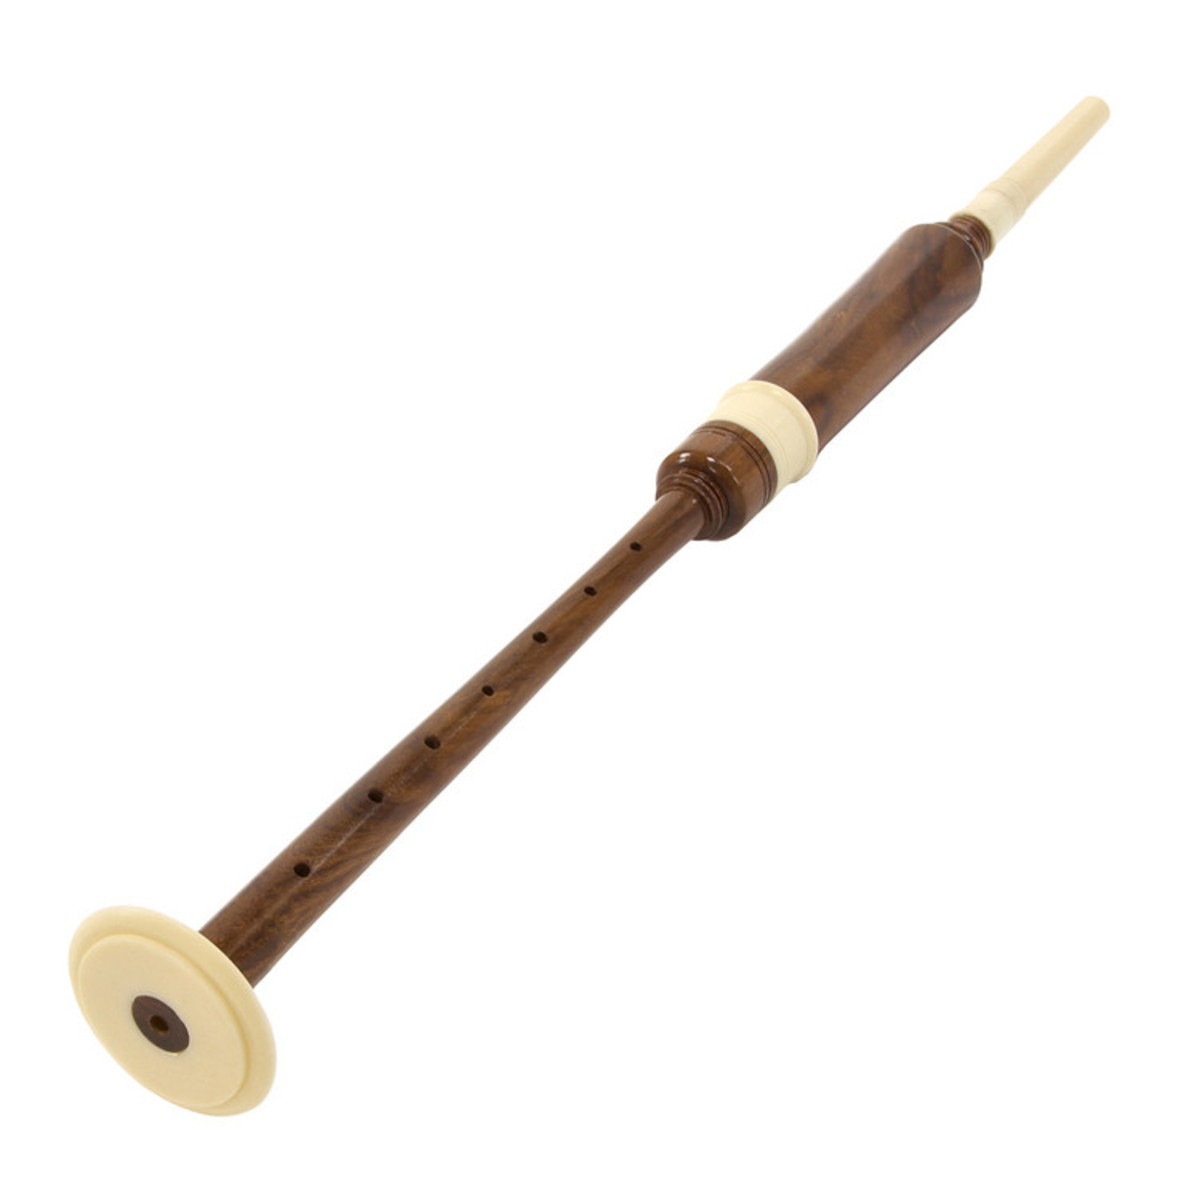 Image of Practice Chanter by Gear4music Rosewood